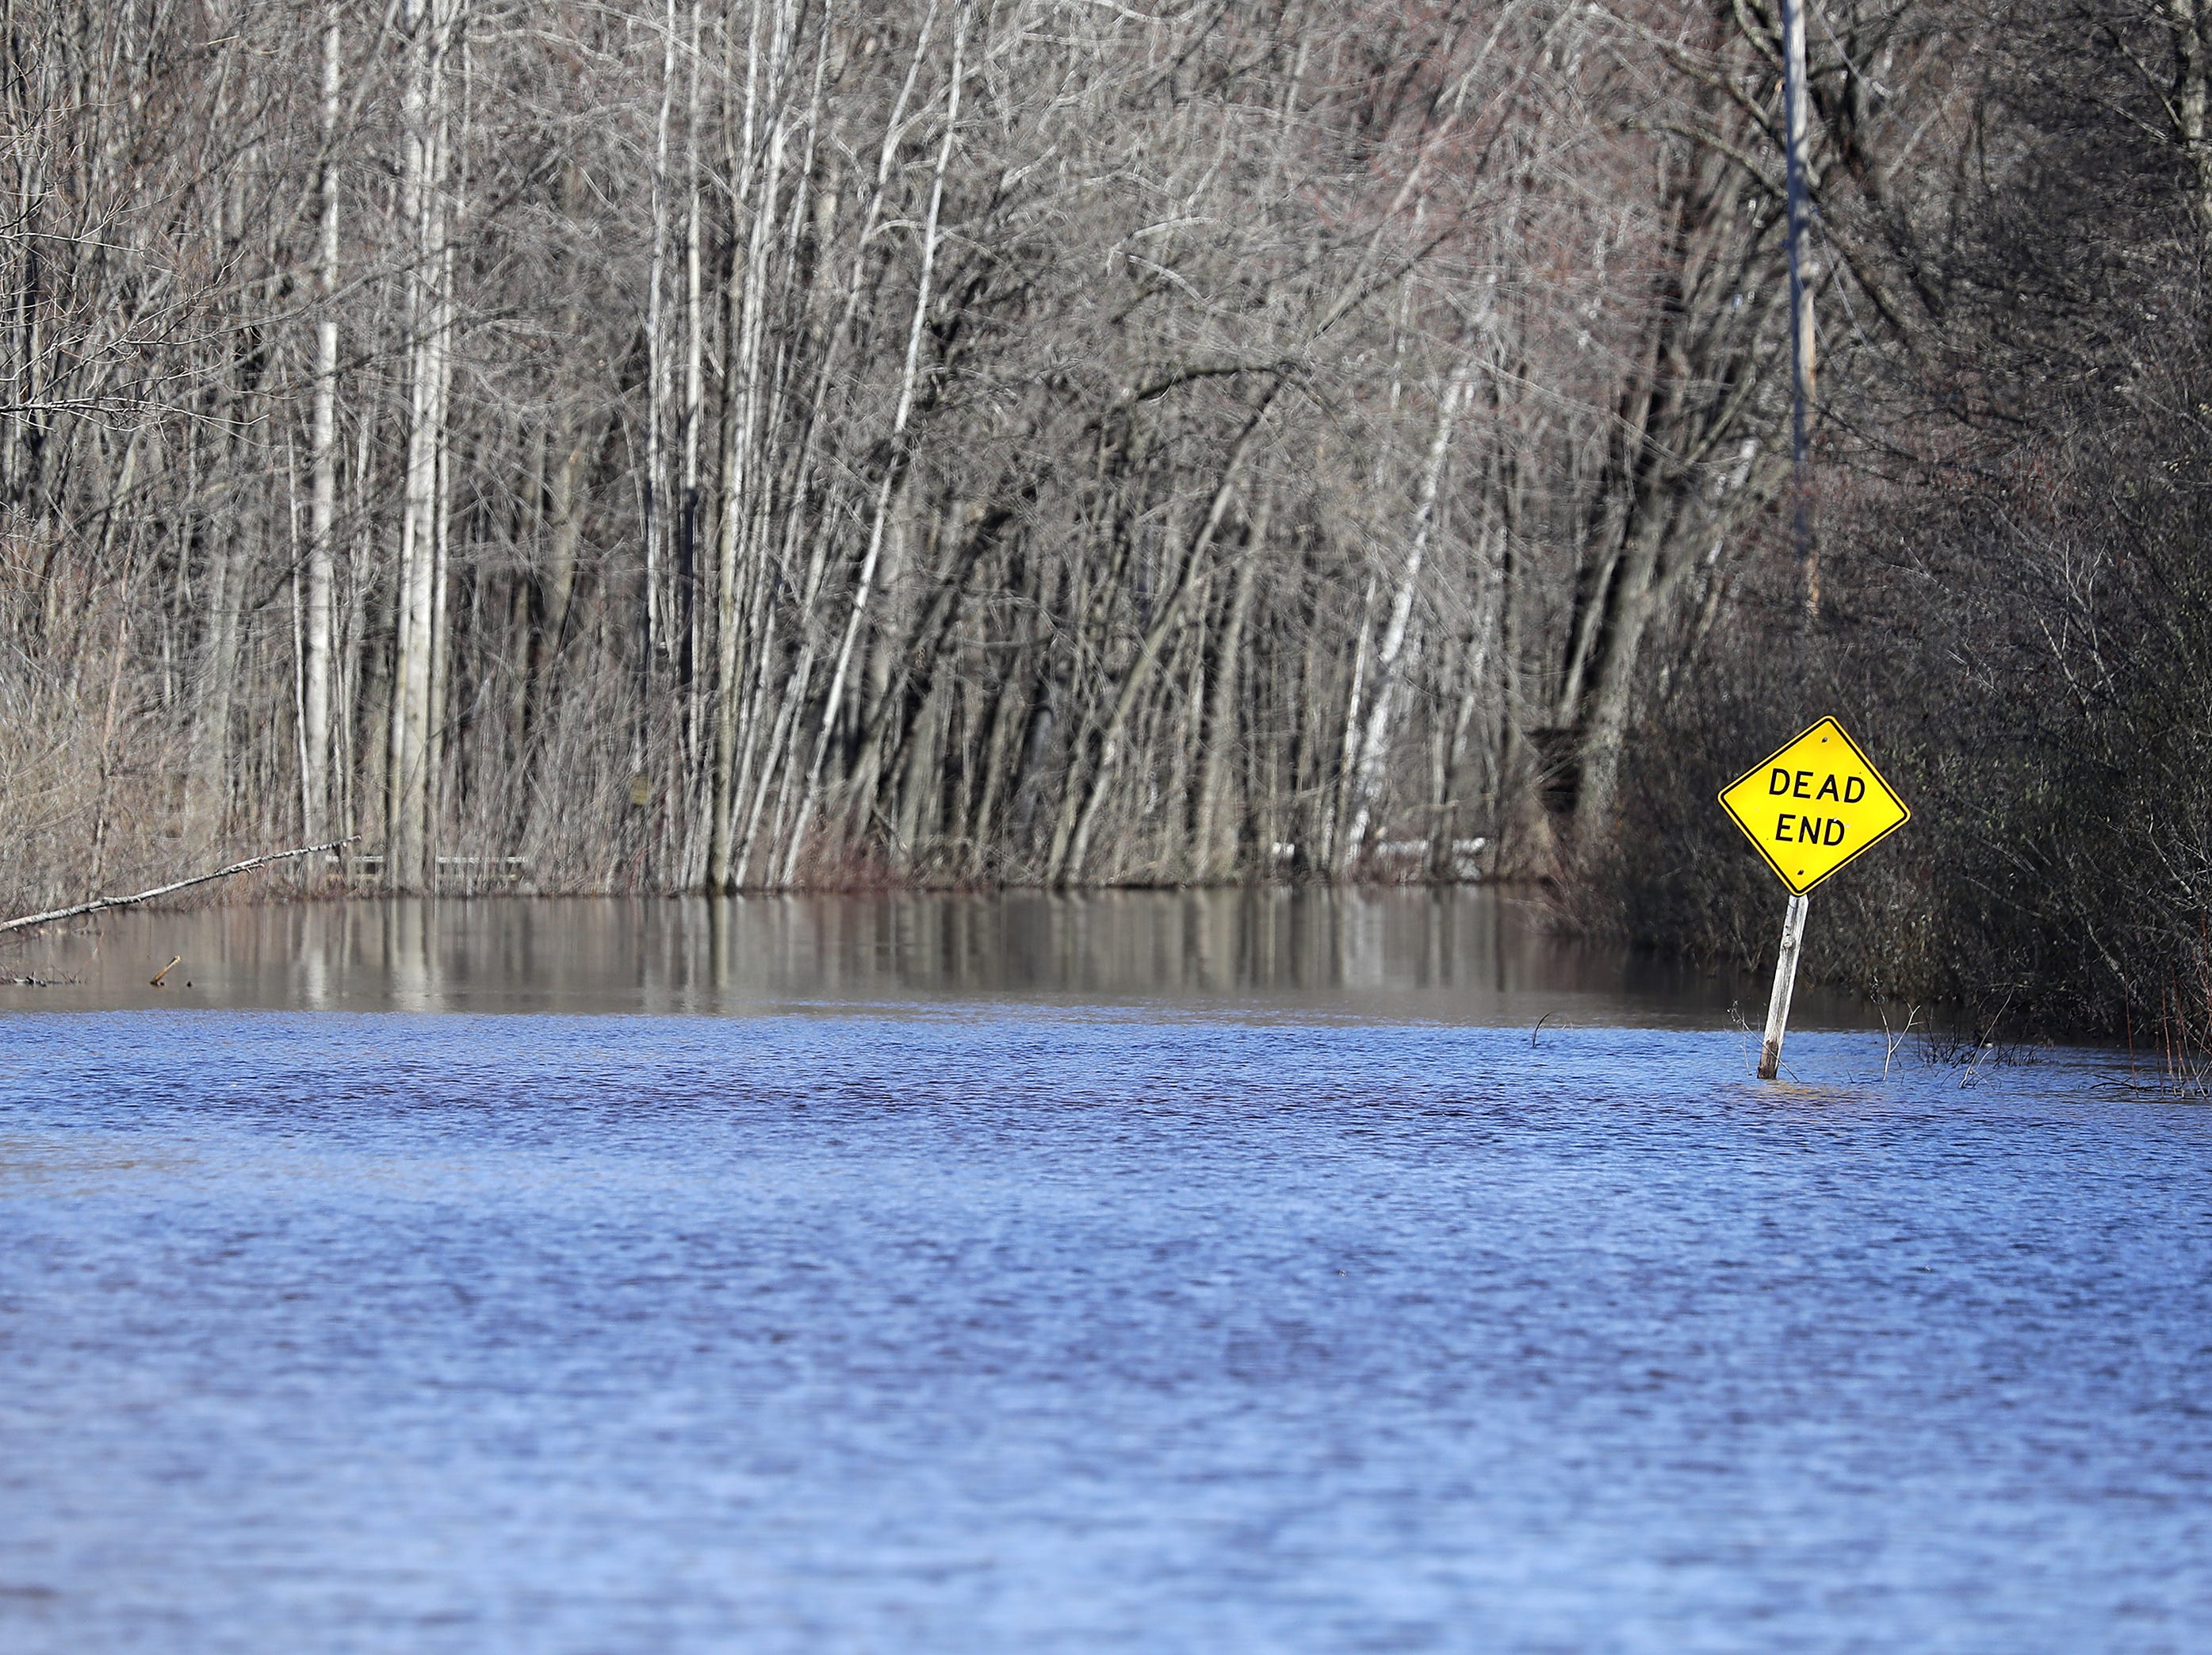 La Marche Rd. is under water during flooding along the Wolf River on Tuesday, April 23, 2019, in Shiocton, Wis.  Wm. Glasheen/USA TODAY NETWORK-Wisconsin.